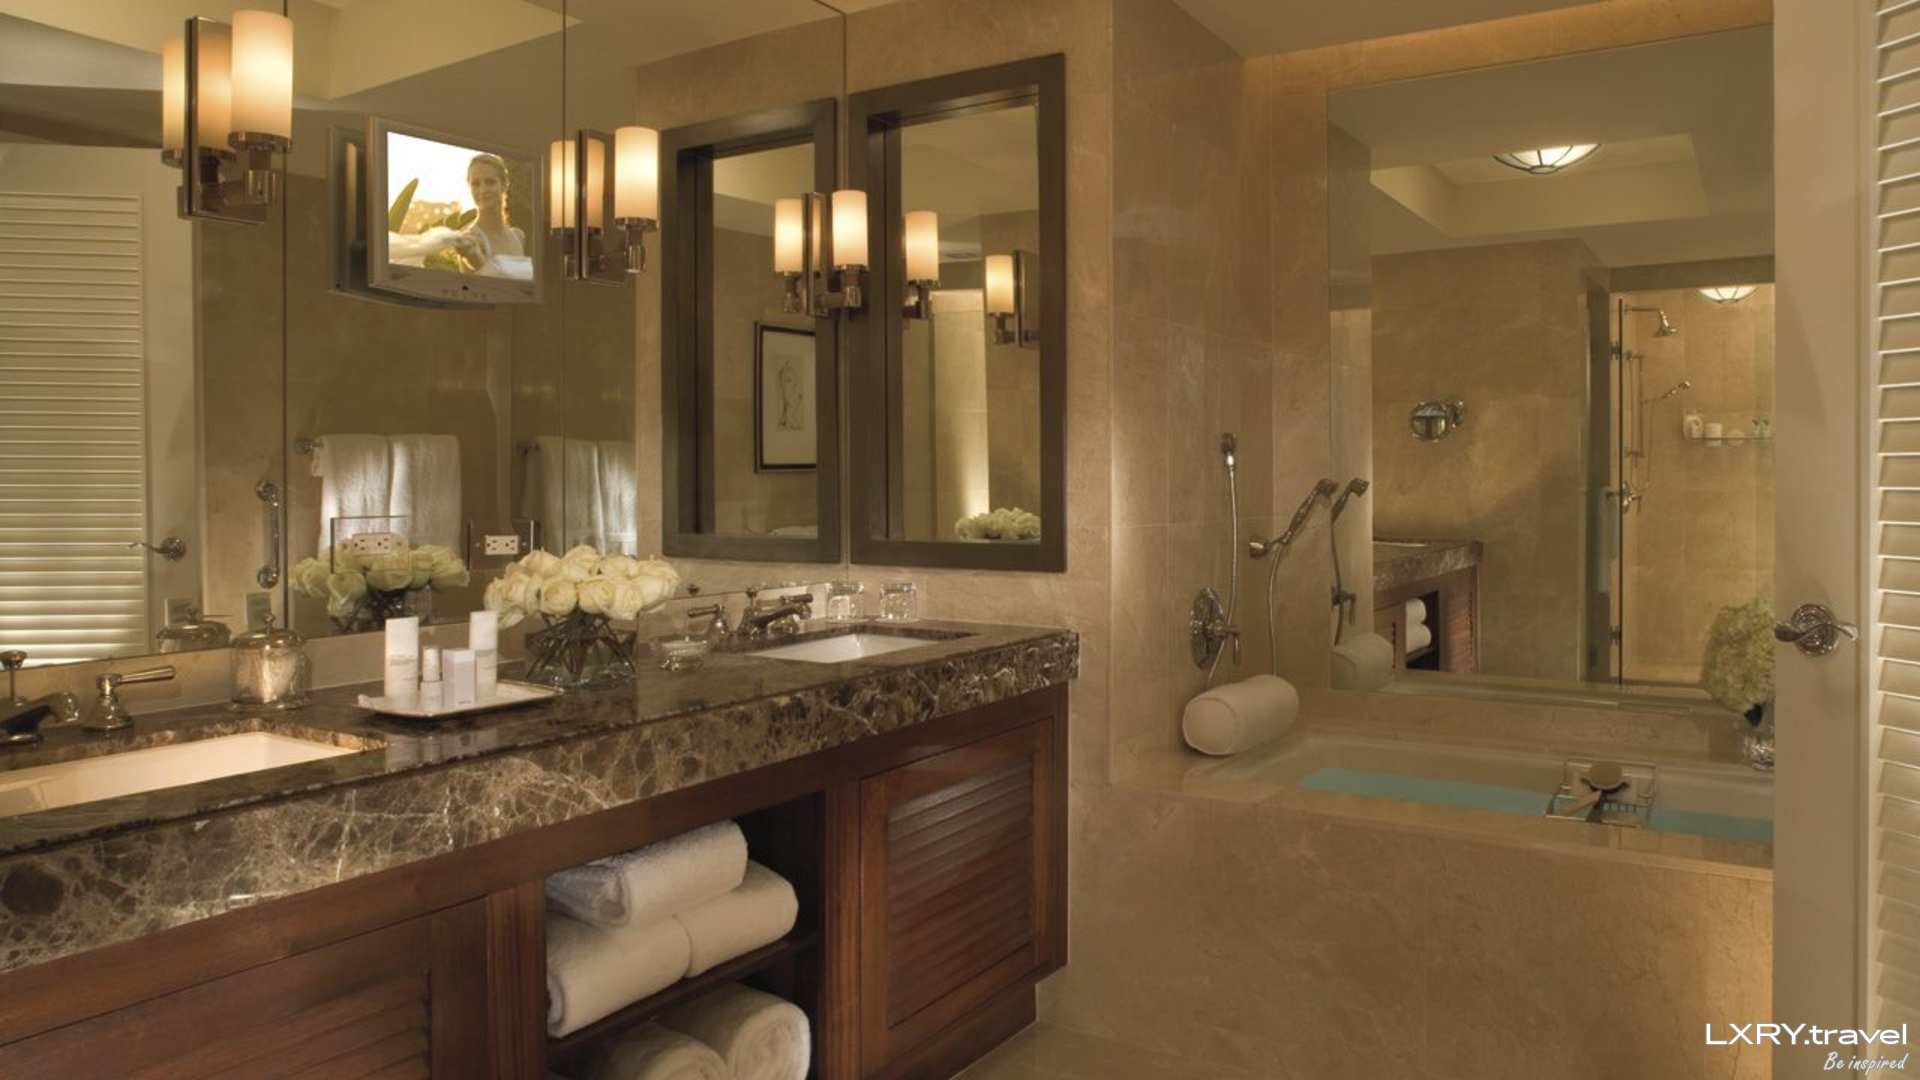 The Ritz-Carlton, Fort Lauderdale 13/43